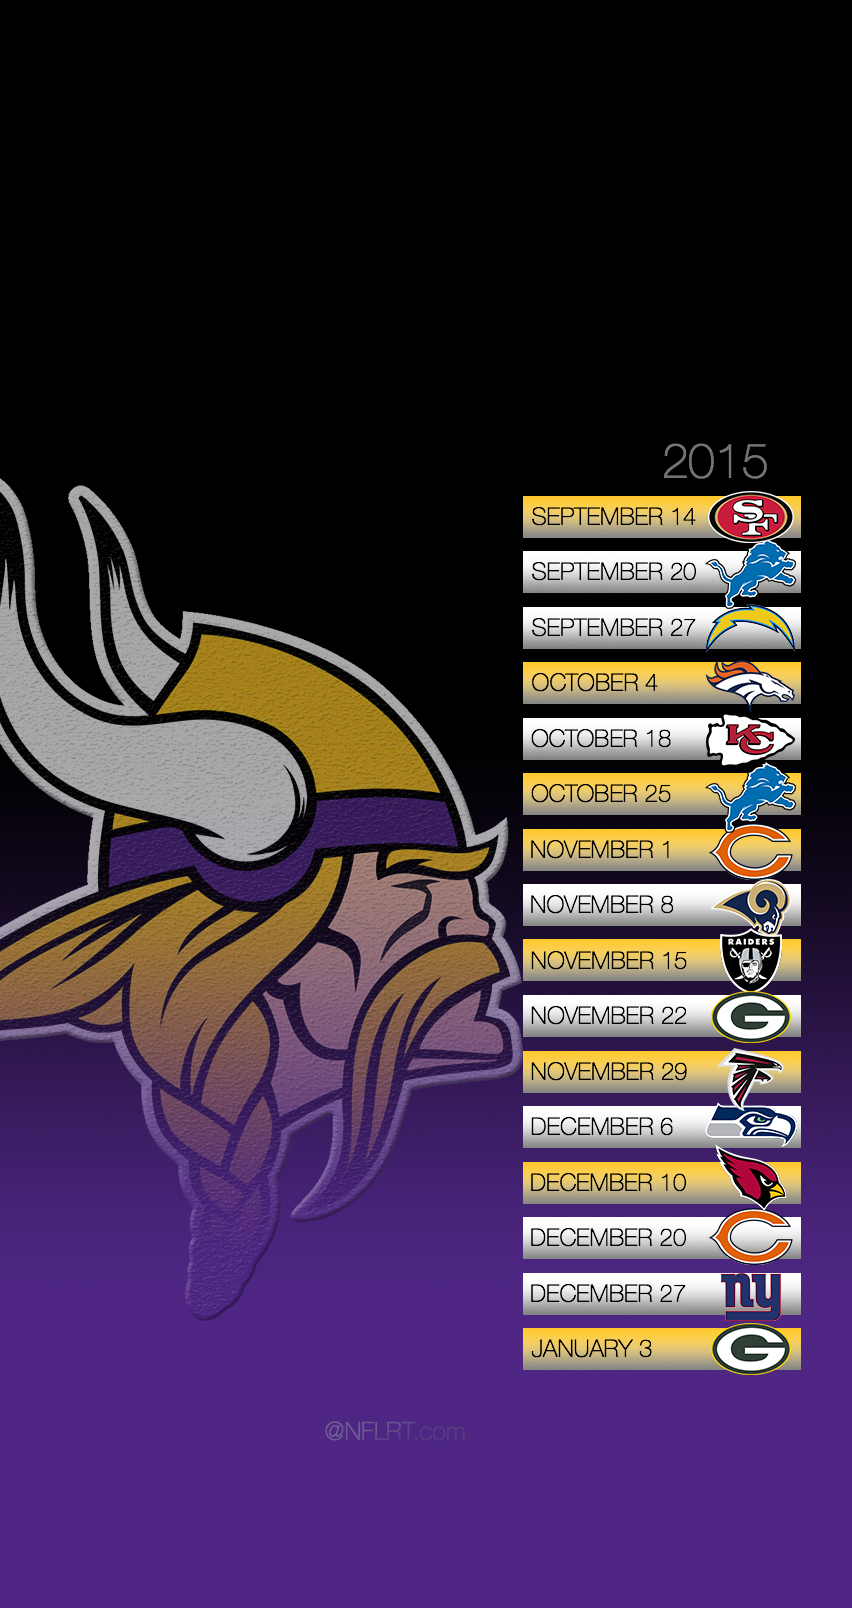 2015 NFL Schedule Wallpapers   Page 4 of 8   NFLRT 852x1608